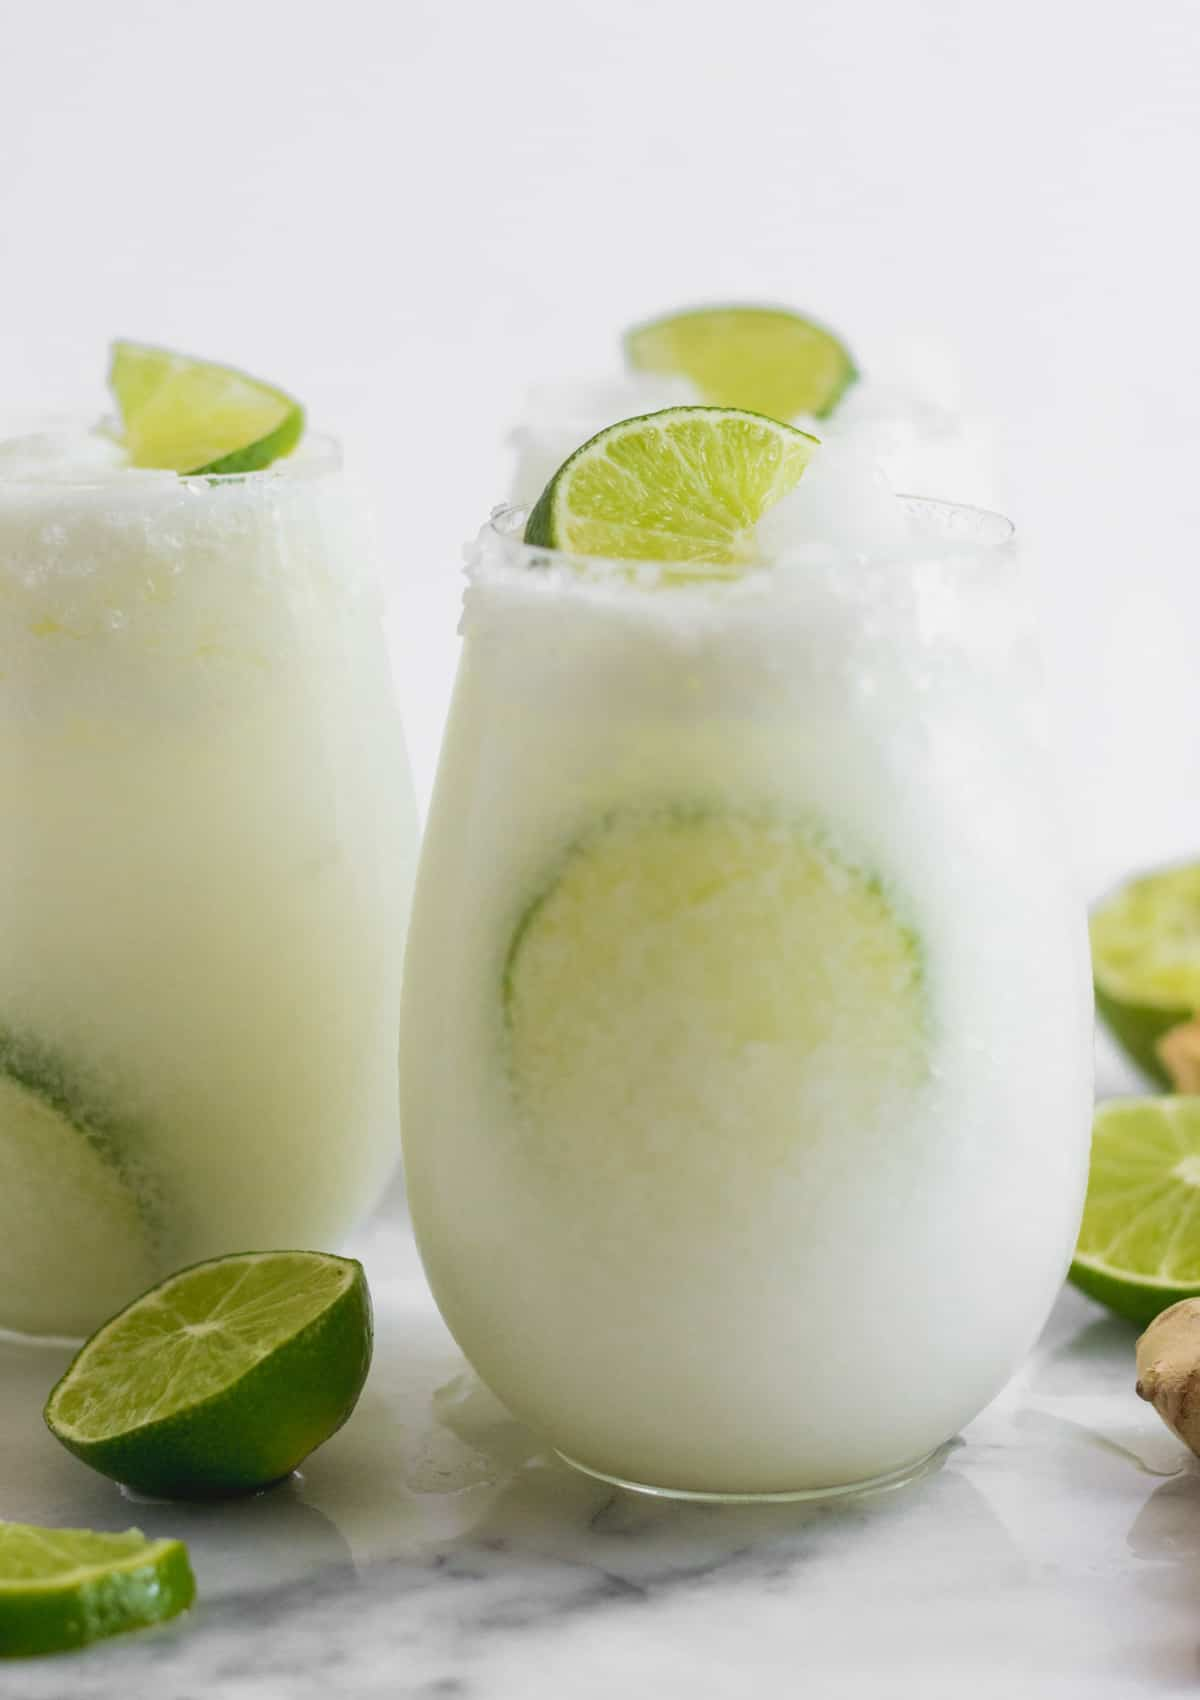 Glass filled with coconut lime mocktail with a lime in the glass and garnished with a lime wedge